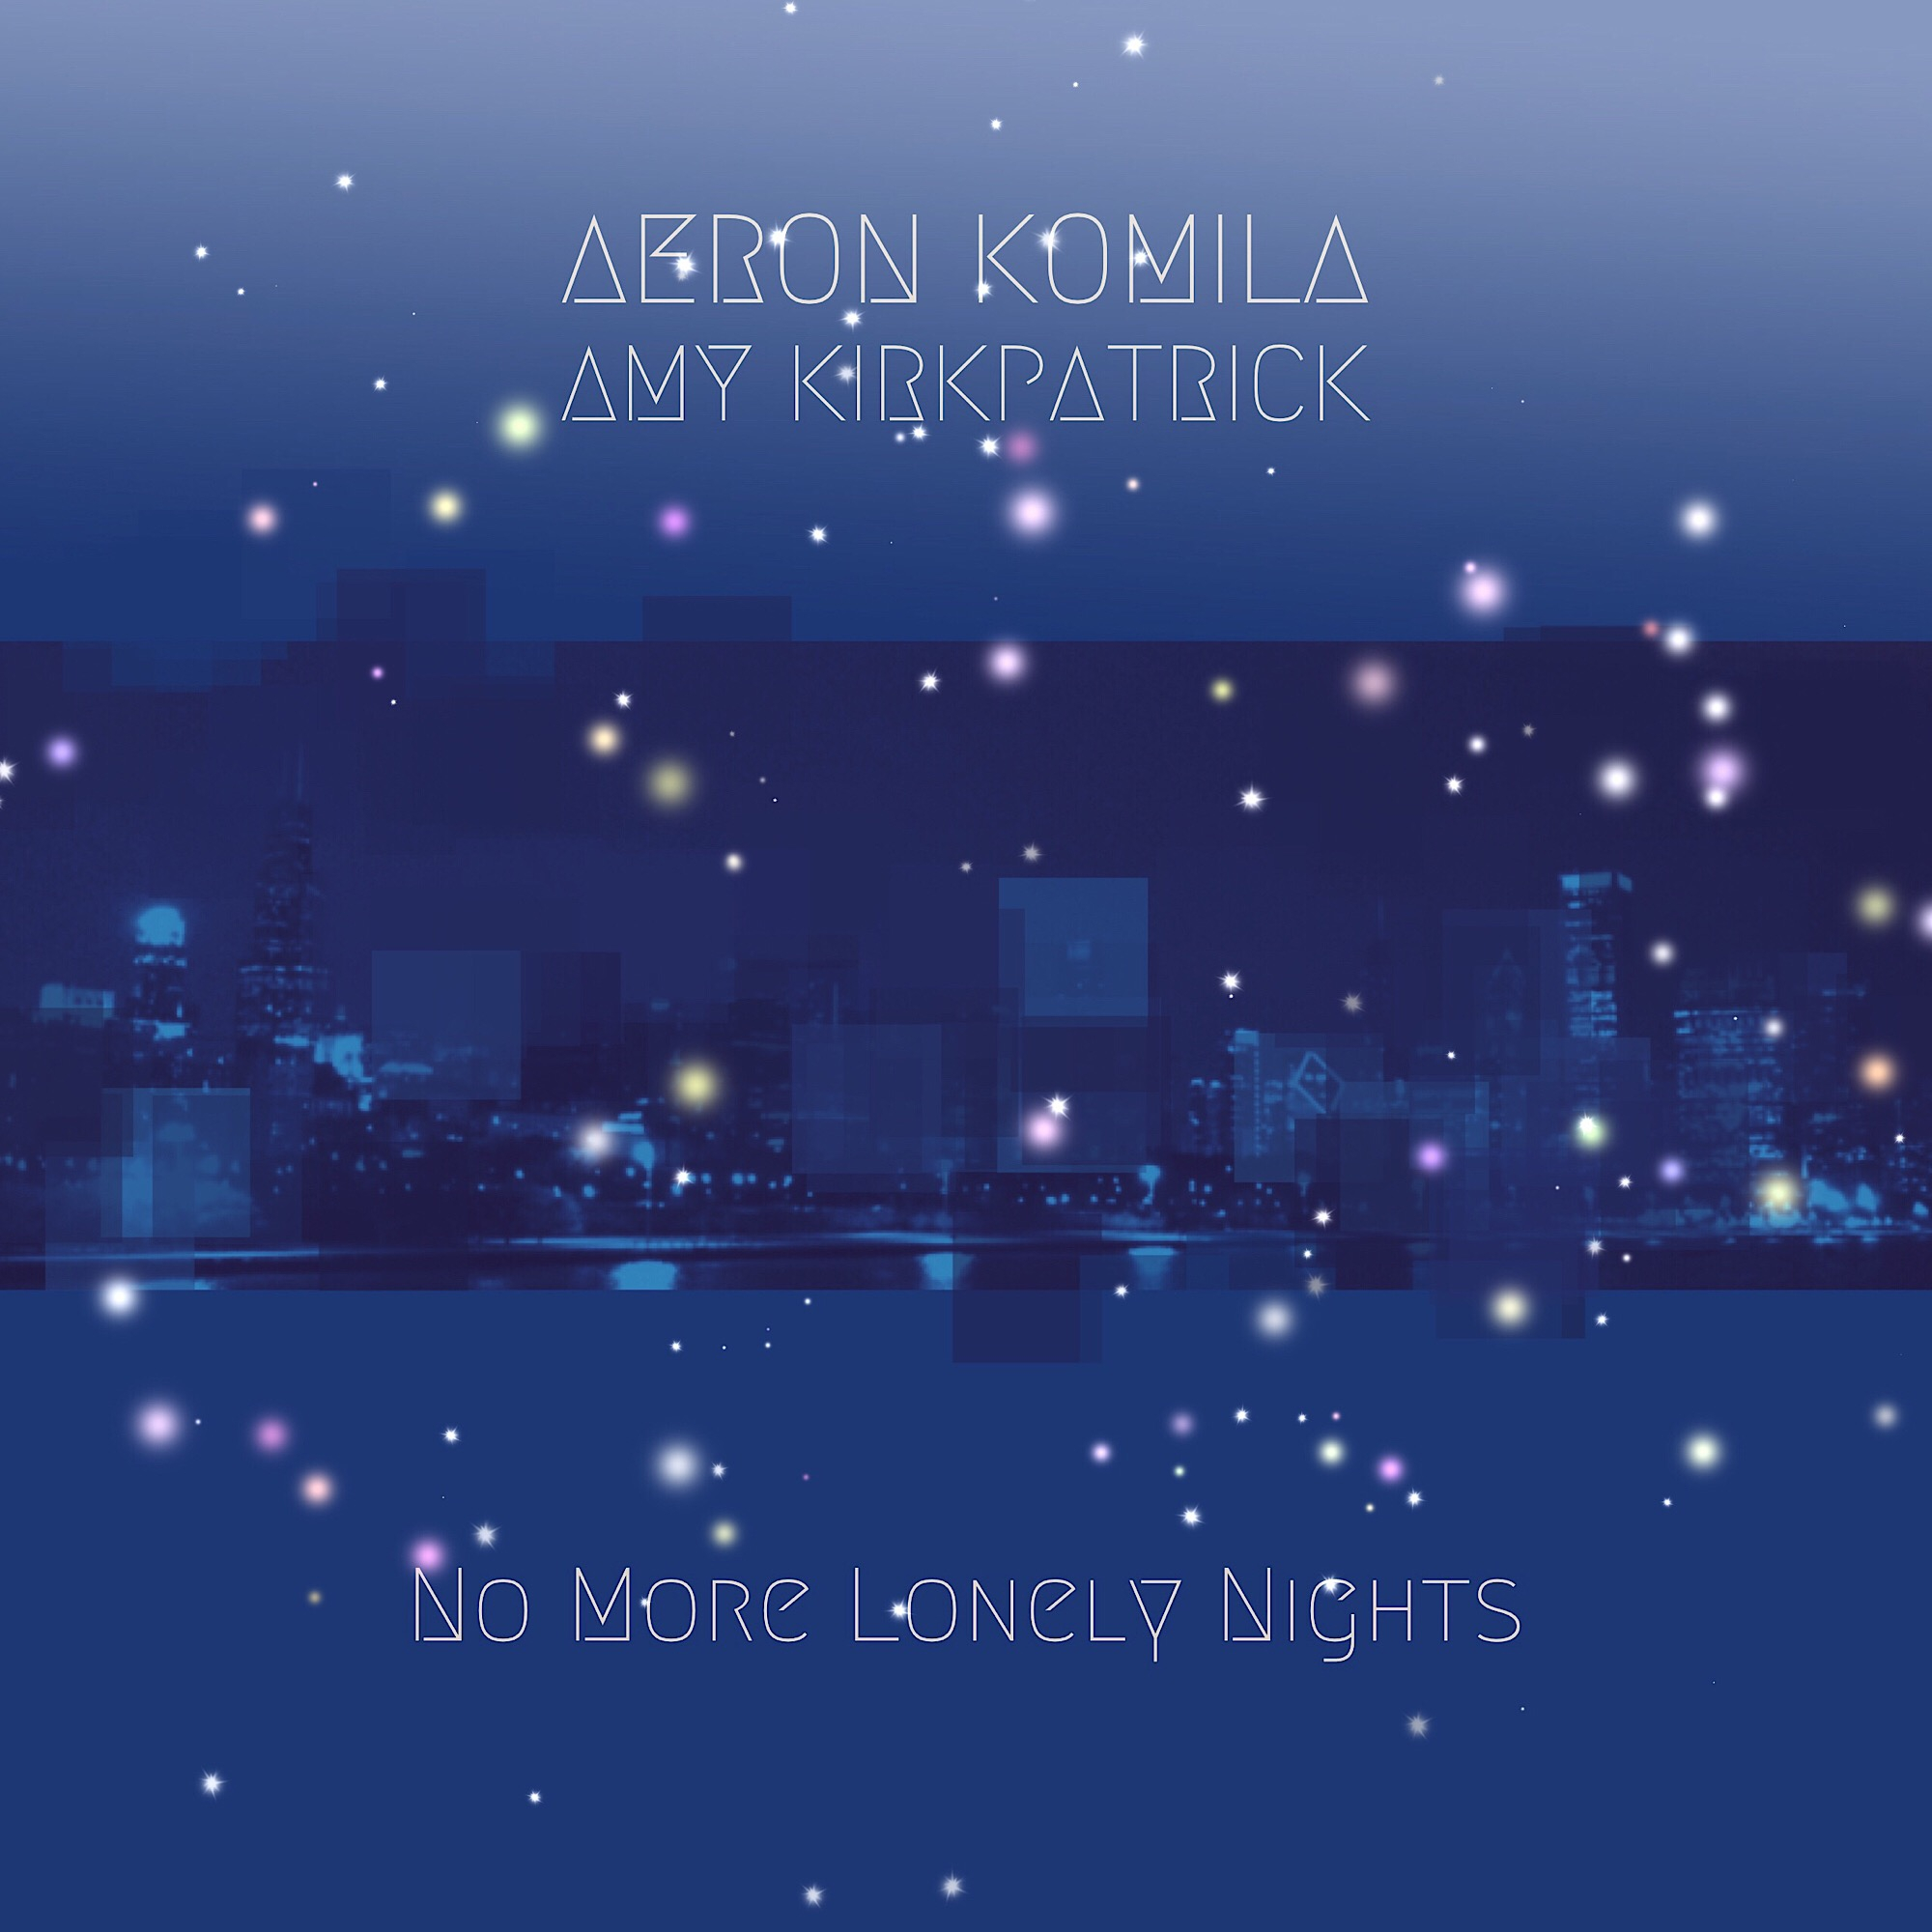 Aeron Komila - No More Lonely Nights (Alternate Radio Edit)